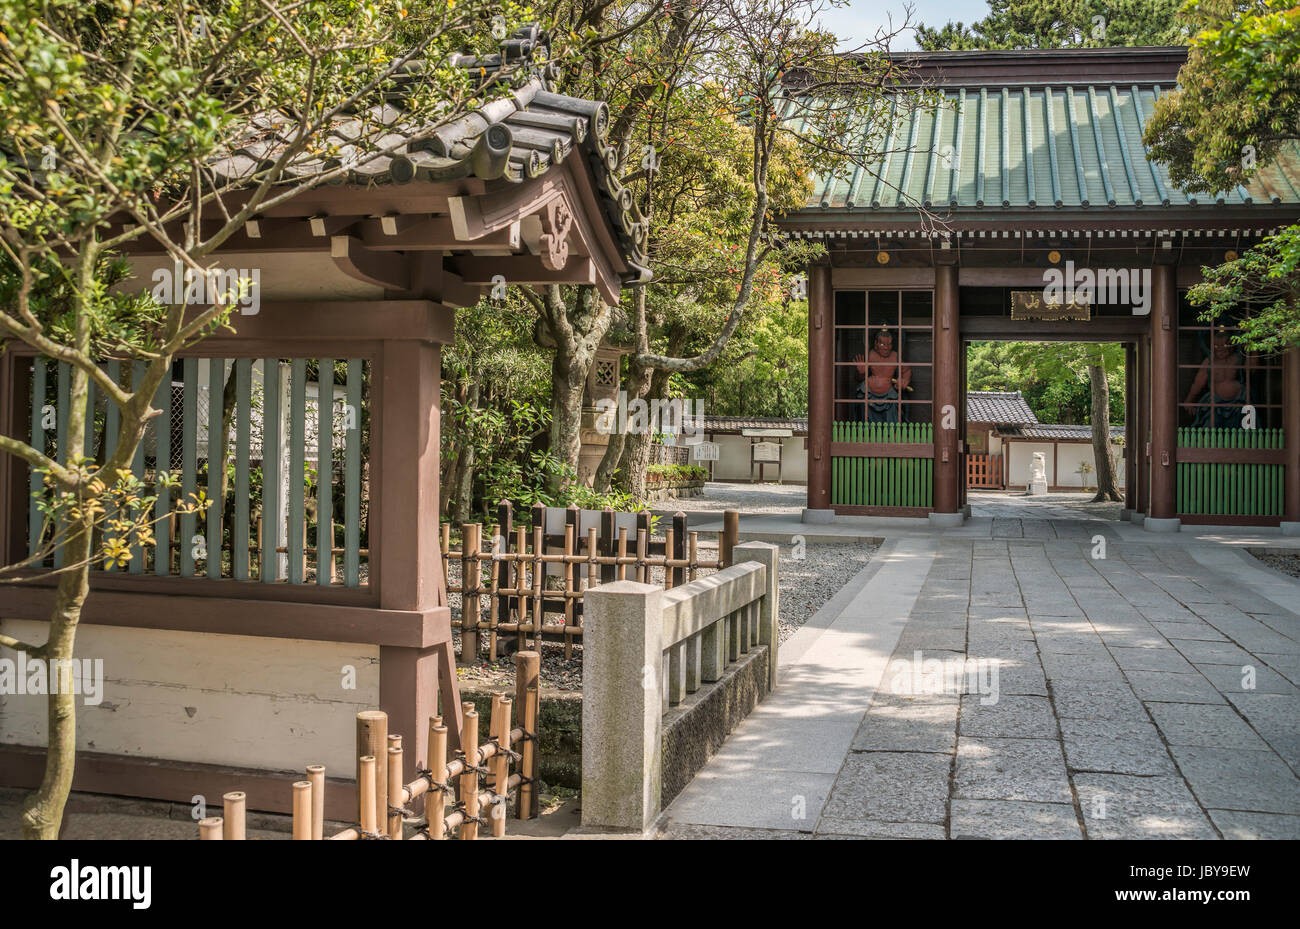 Kōtoku-in a Buddhist temple of the Jōdo-shū sect in the city of Kamakura in Kanagawa Prefecture, Japan. - Stock Image